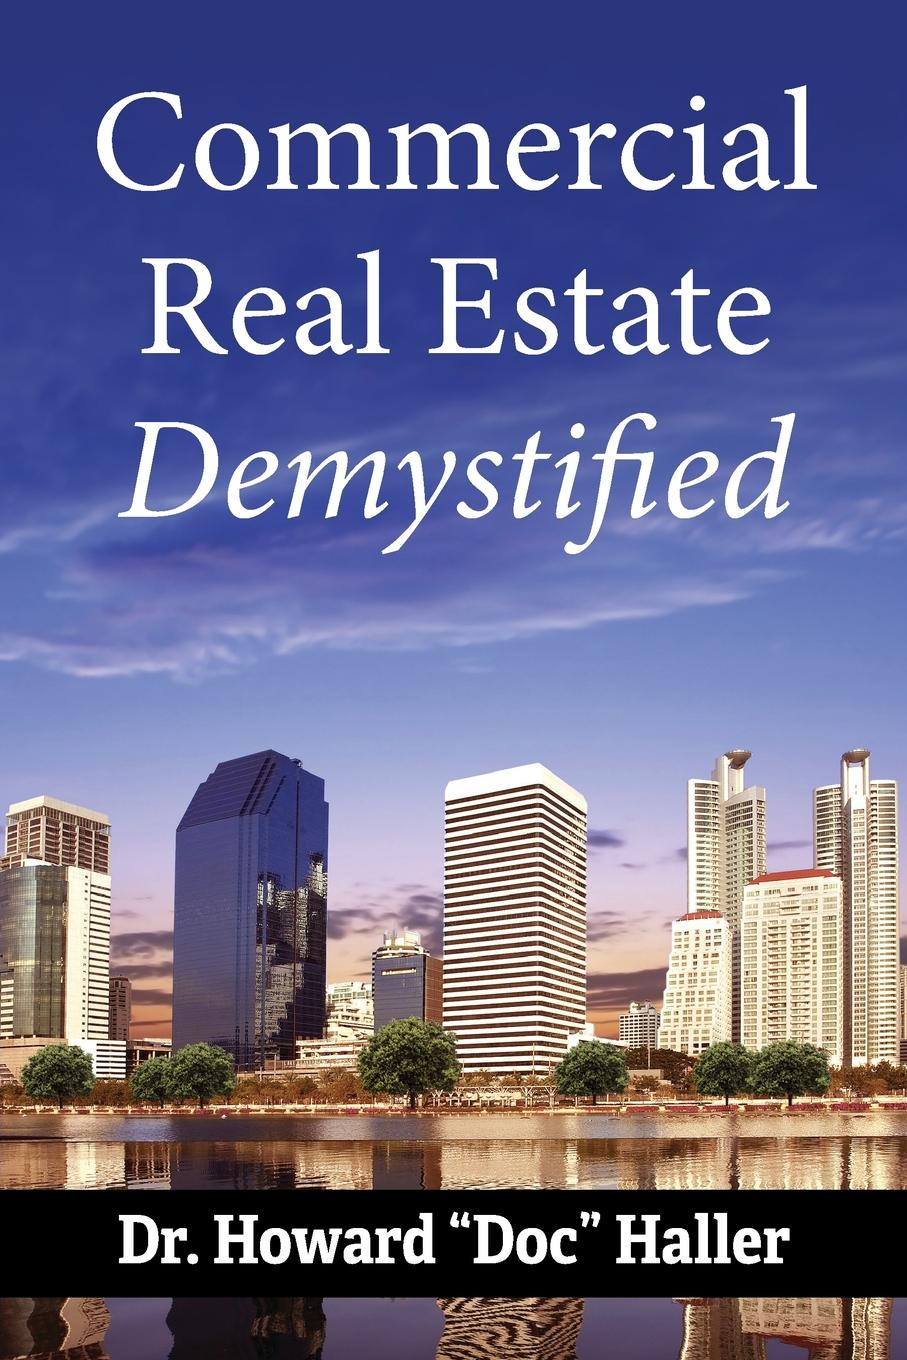 Dr. Doc Howard Haller Commercial Real Estate, Demystified. How to PROFIT From Cash-Flowing Commercial Real Estate tony wood the commercial real estate tsunami a survival guide for lenders owners buyers and brokers